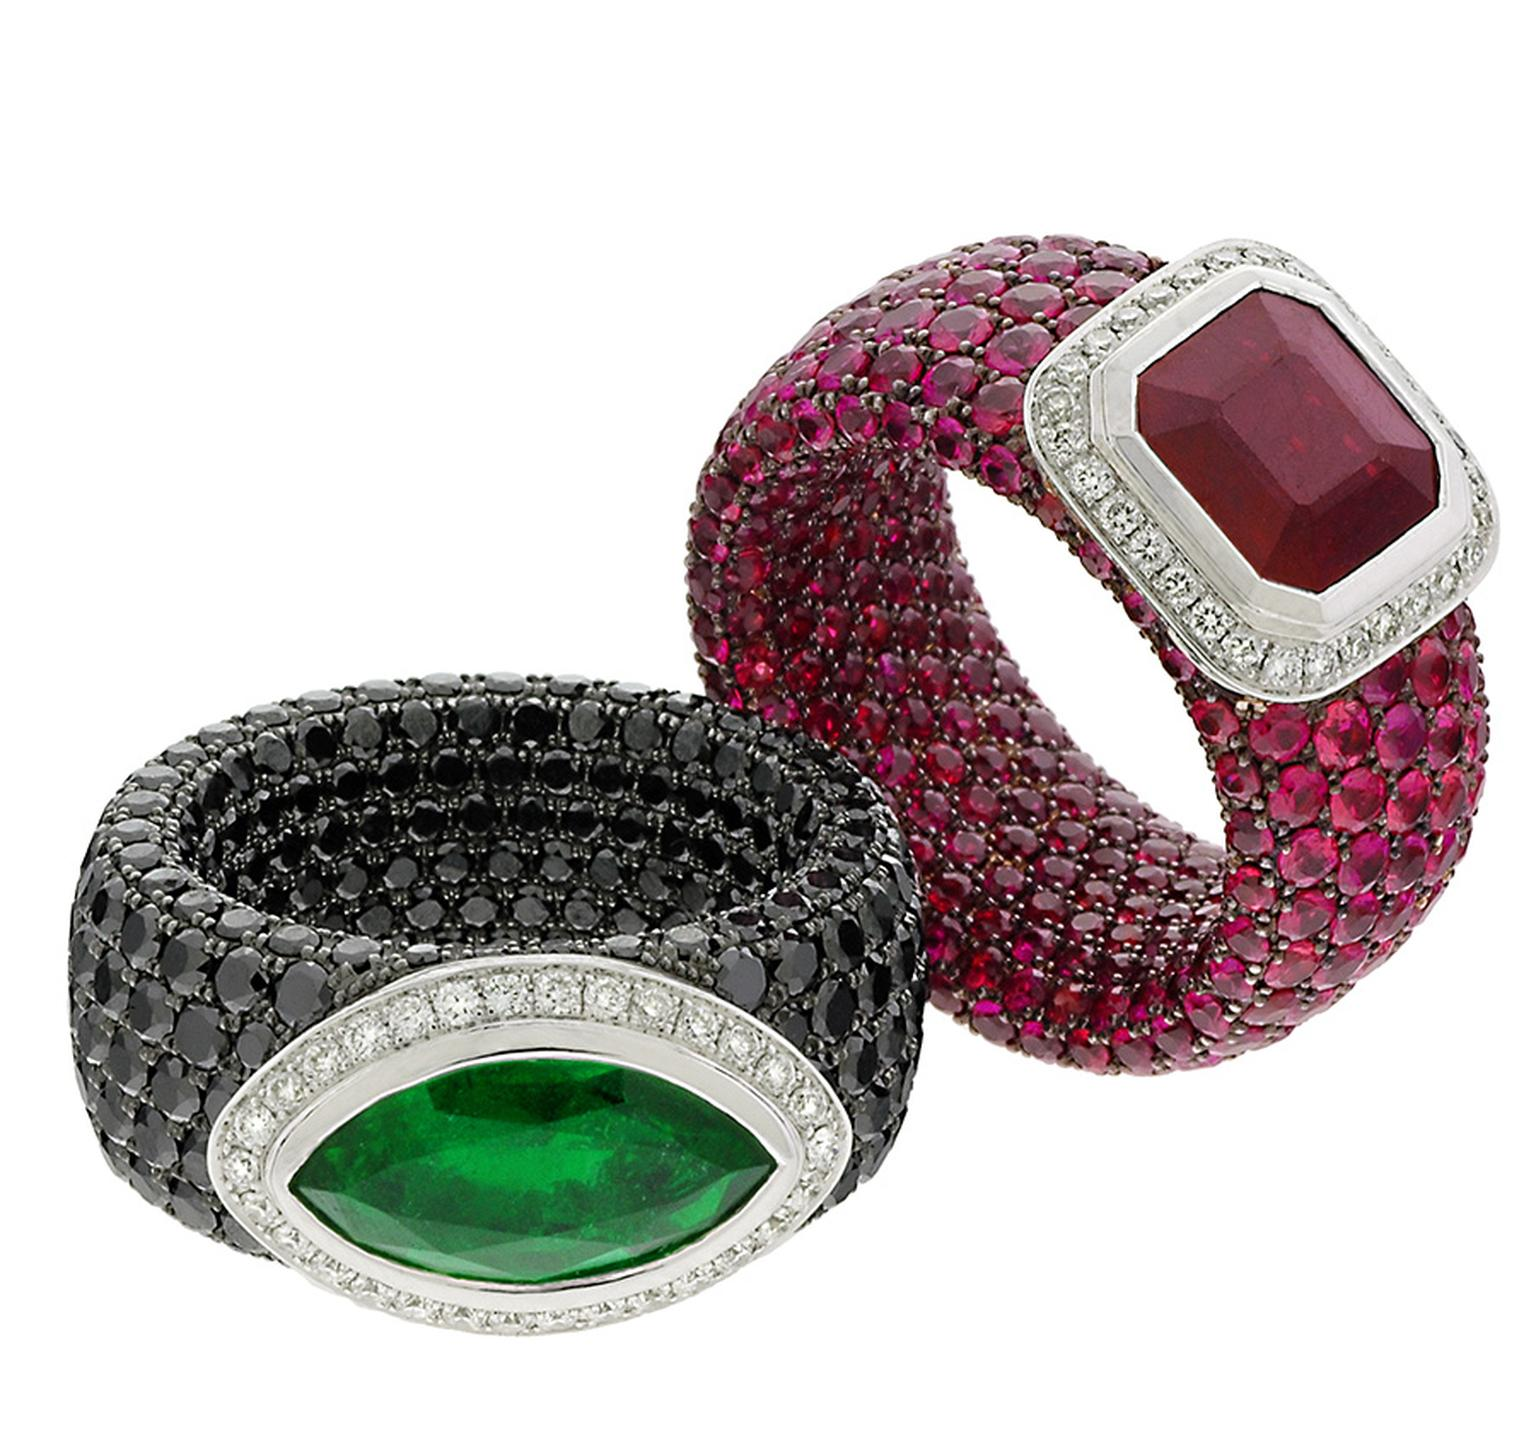 01-AVAKIAN-emerald-and-ruby-rings